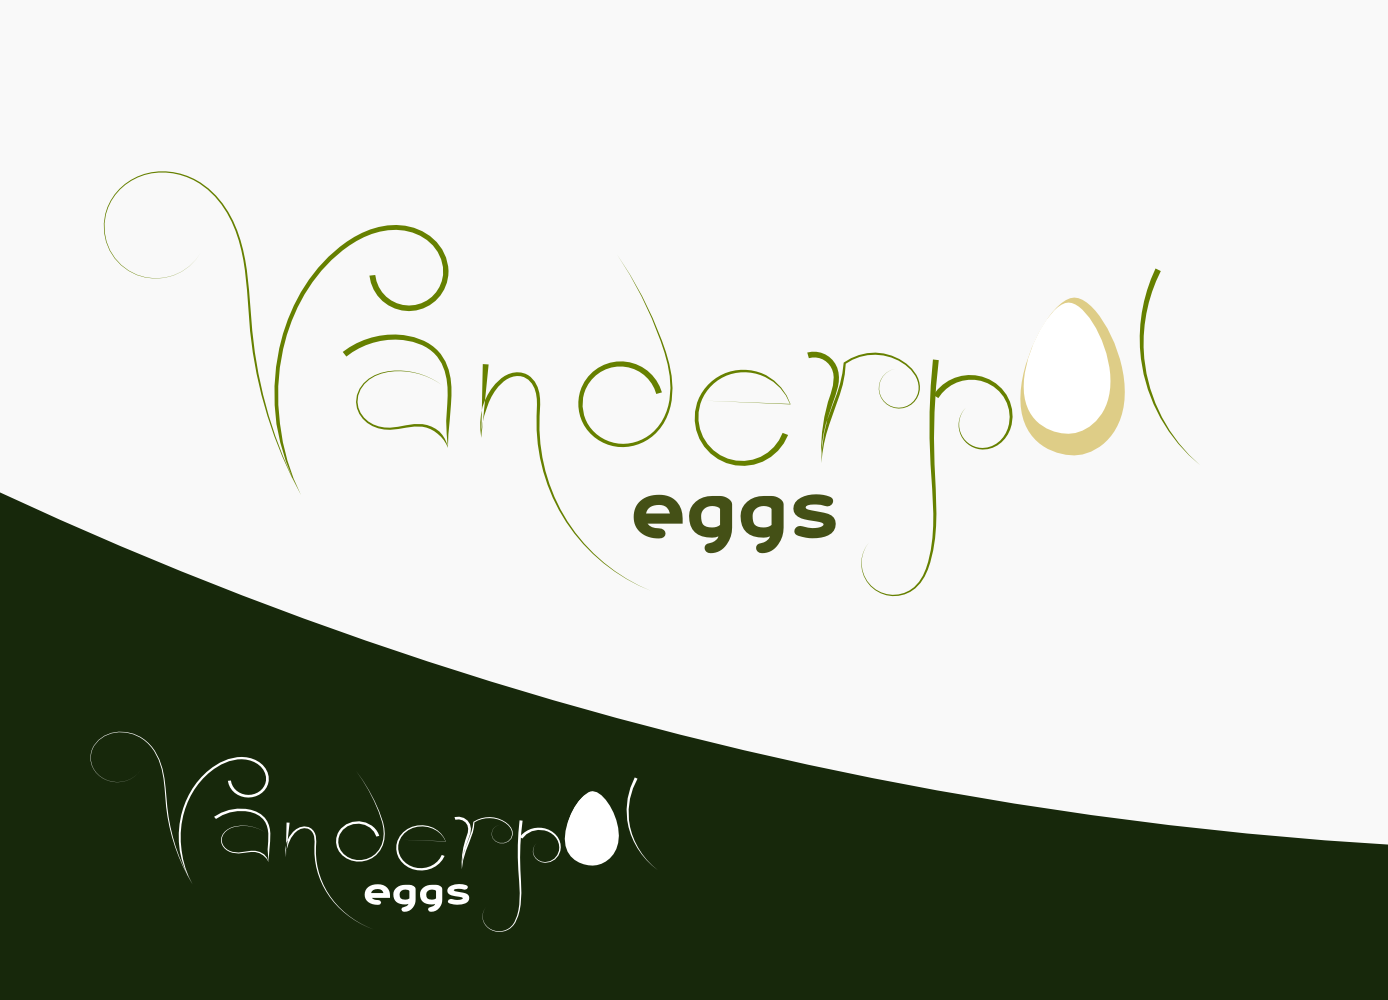 Logo Design by Arindam Khanda - Entry No. 68 in the Logo Design Contest Creative Logo Design for Vanderpol Food Group.